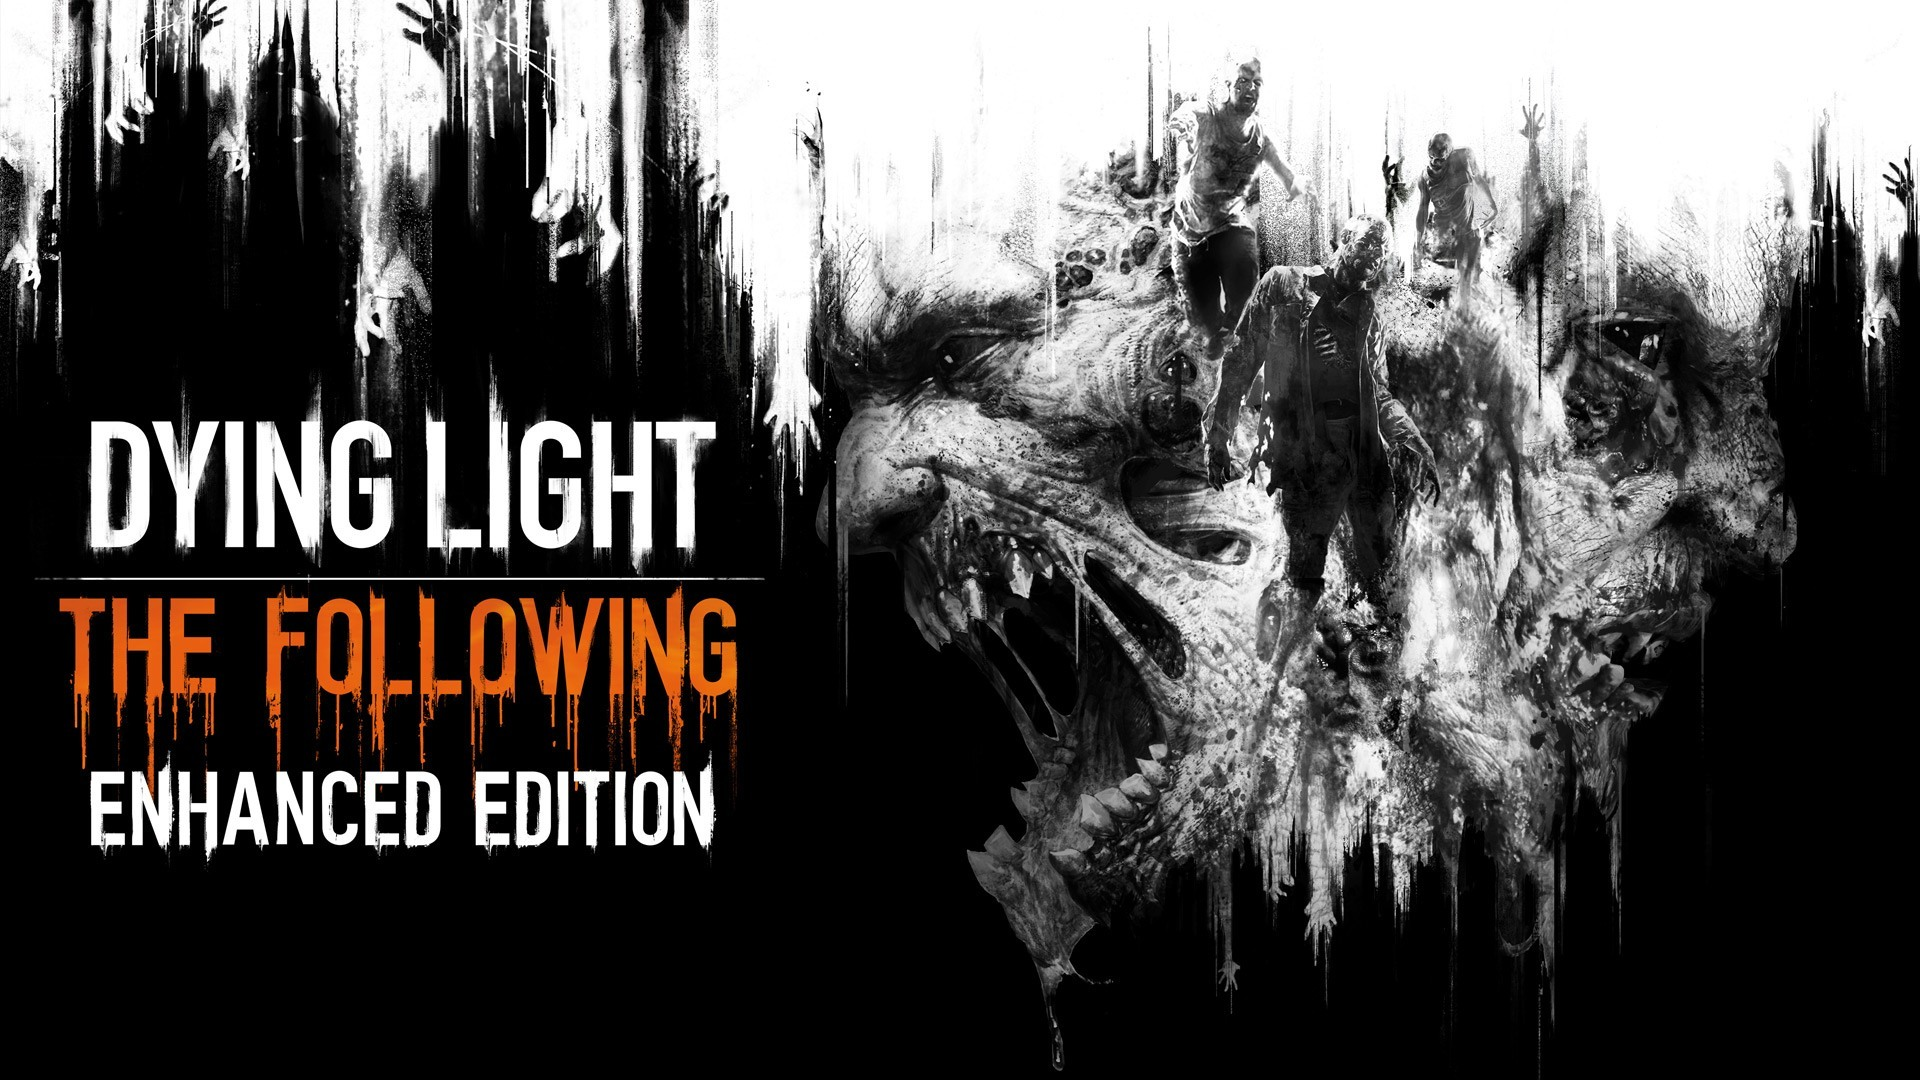 Dying Light The Following Review